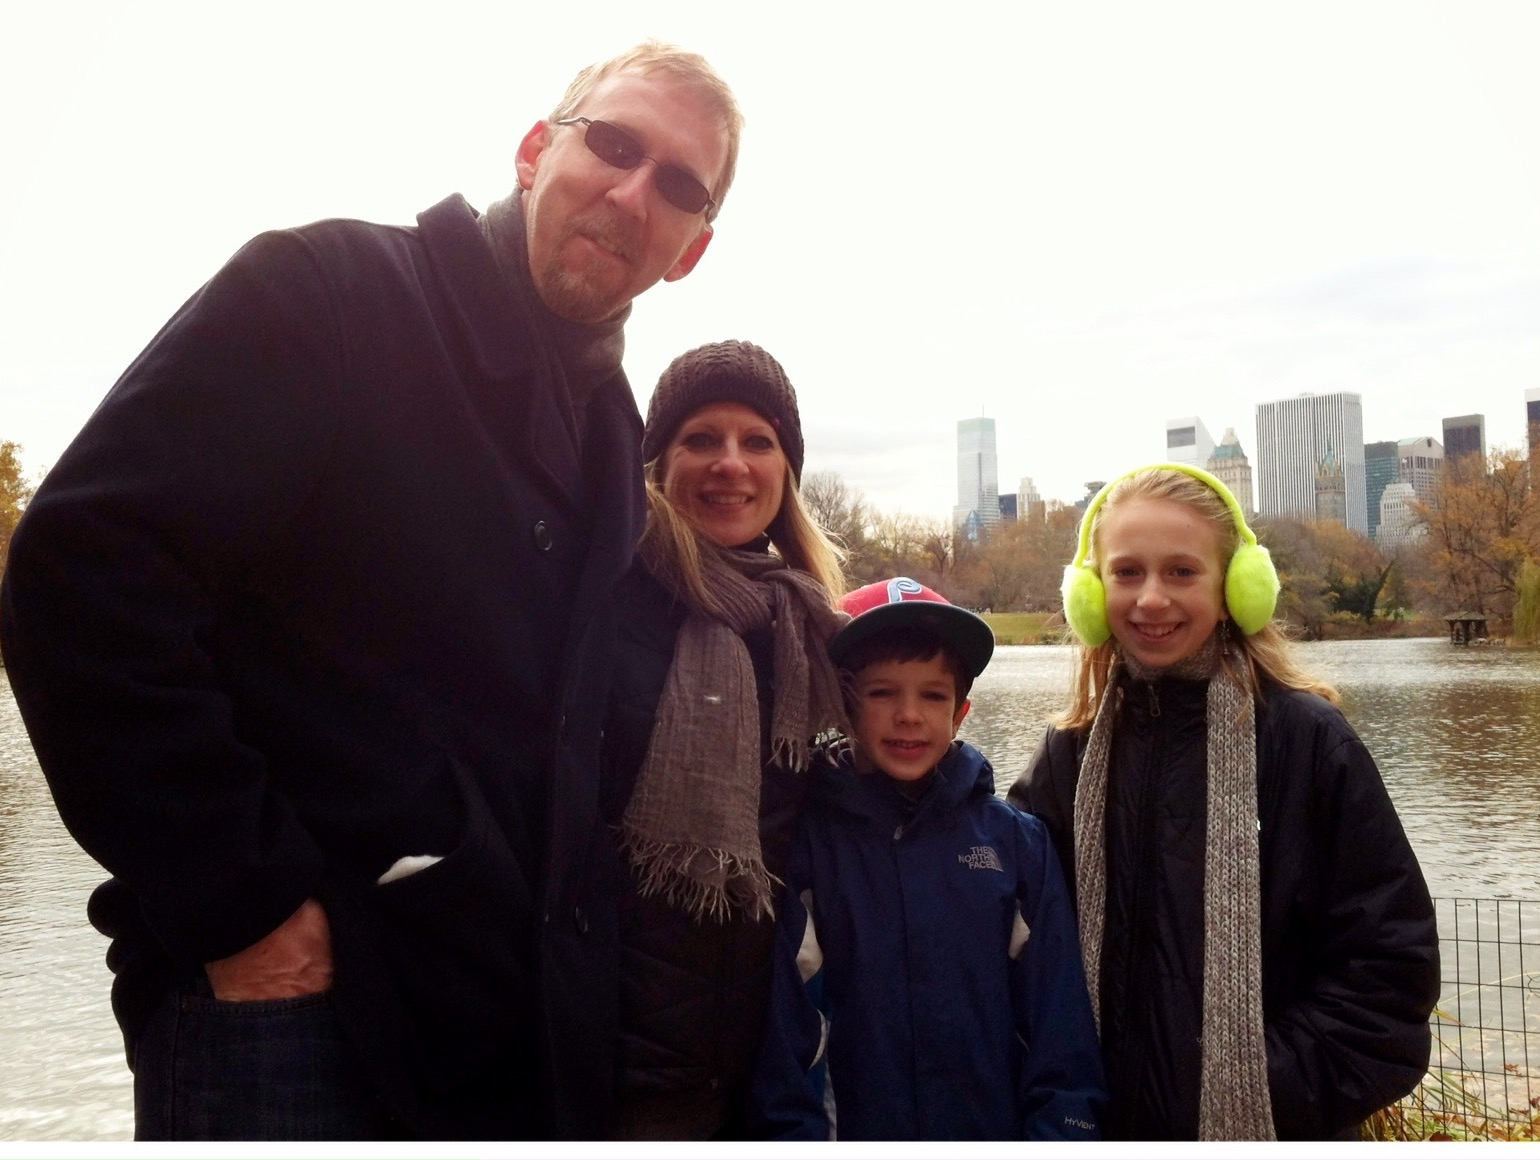 The Sack Family – Central Park, NY, NY 2012